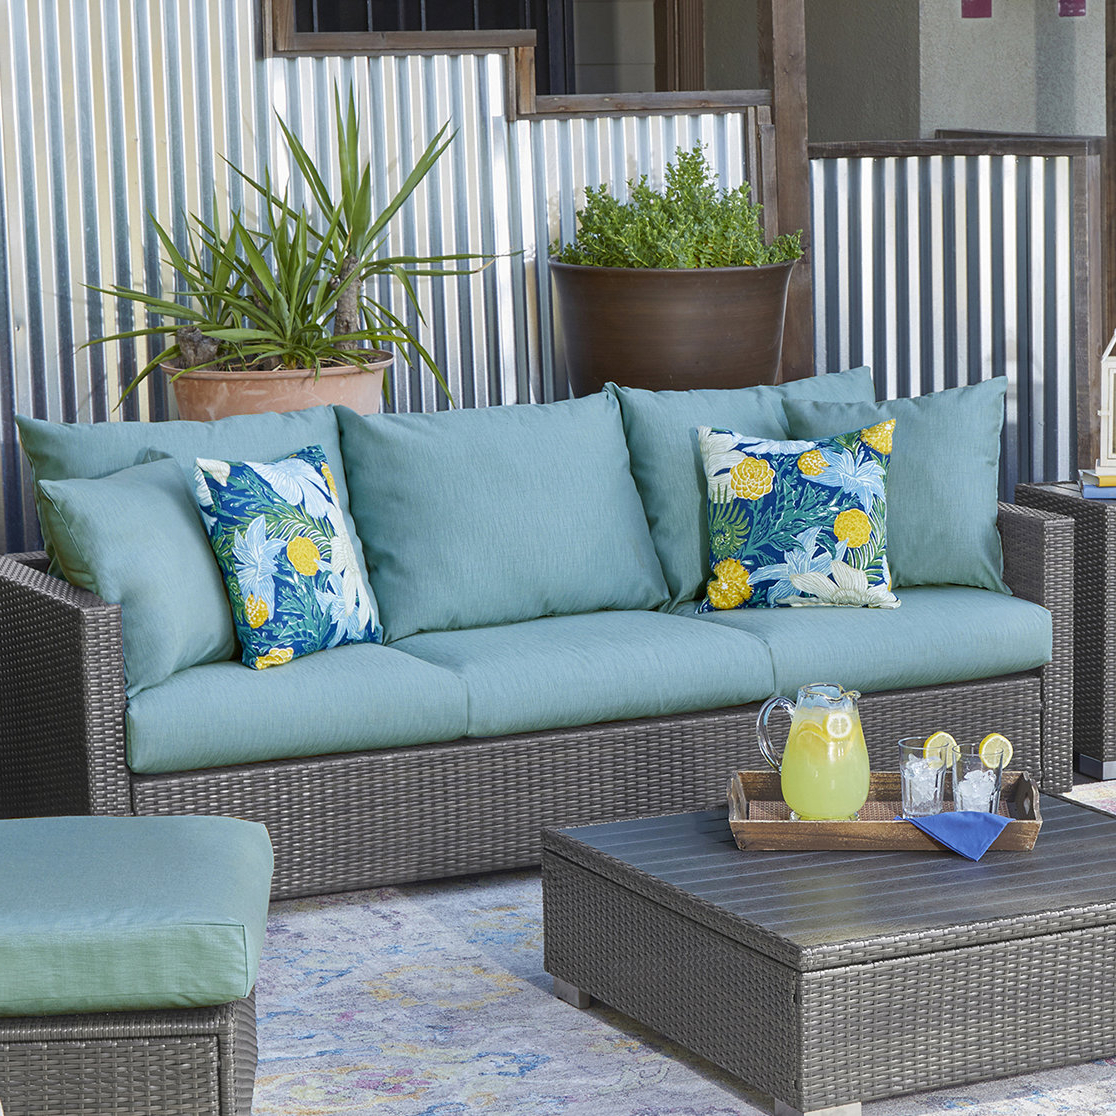 Mcmanis Patio Sofa With Cushion In Well Known Mcmanis Patio Sofas With Cushion (View 5 of 20)